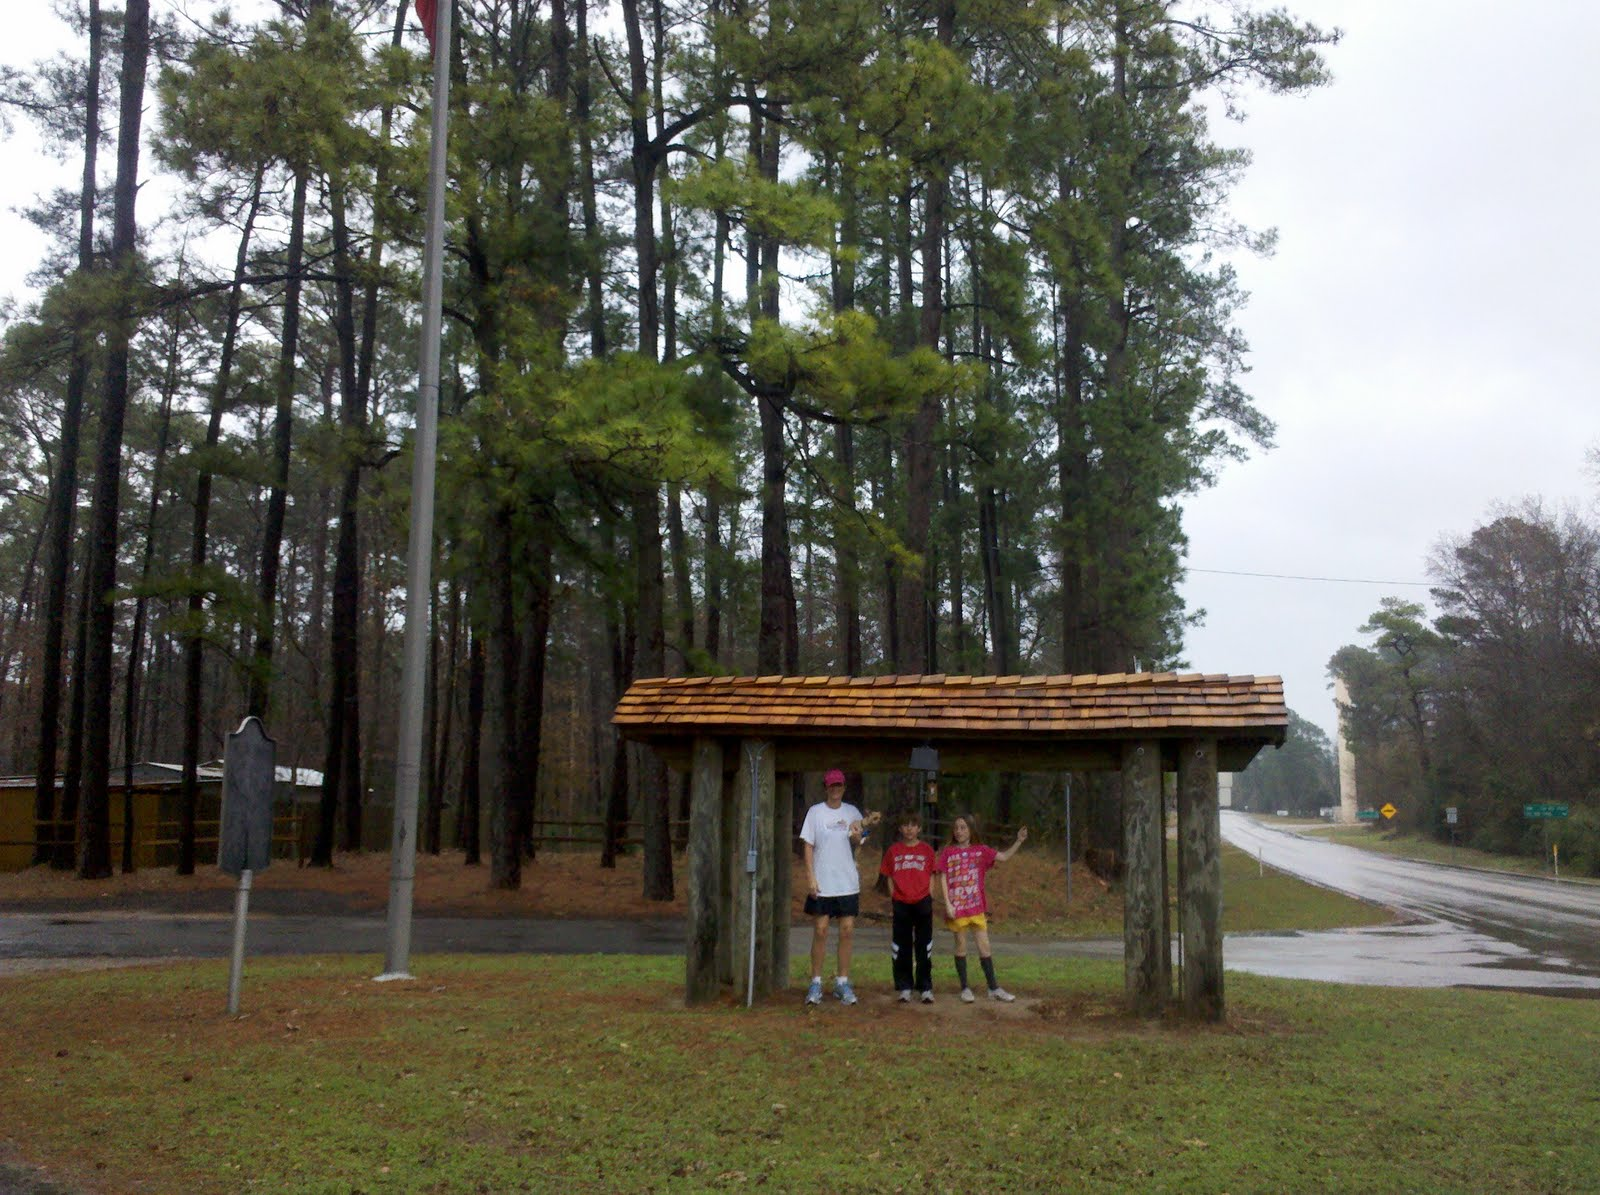 Campsite lake historical site reviews texas mission - Valley memorial gardens mission tx ...